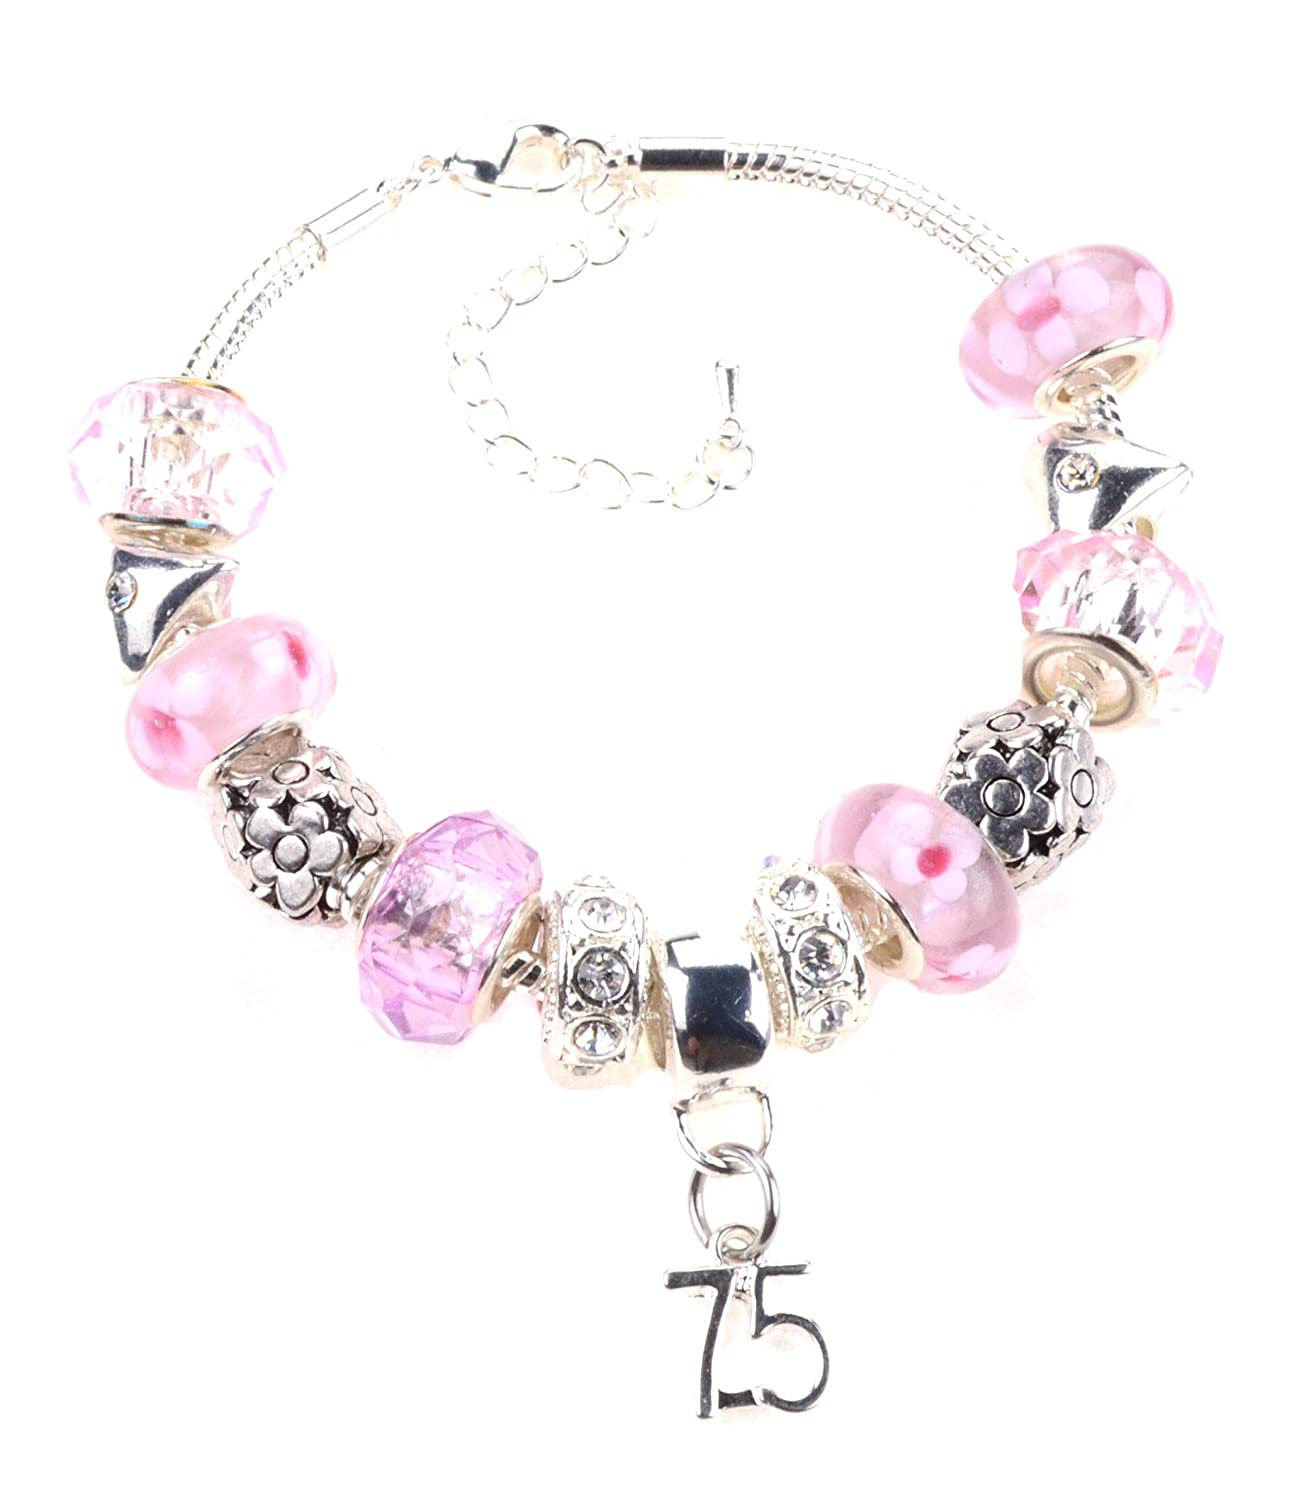 75th Birthday Pink Garland Themed Murano Charm Bracelet in Luxury Jewellery Box with Complimentary Birthday Card CBS Type4: Ch-70